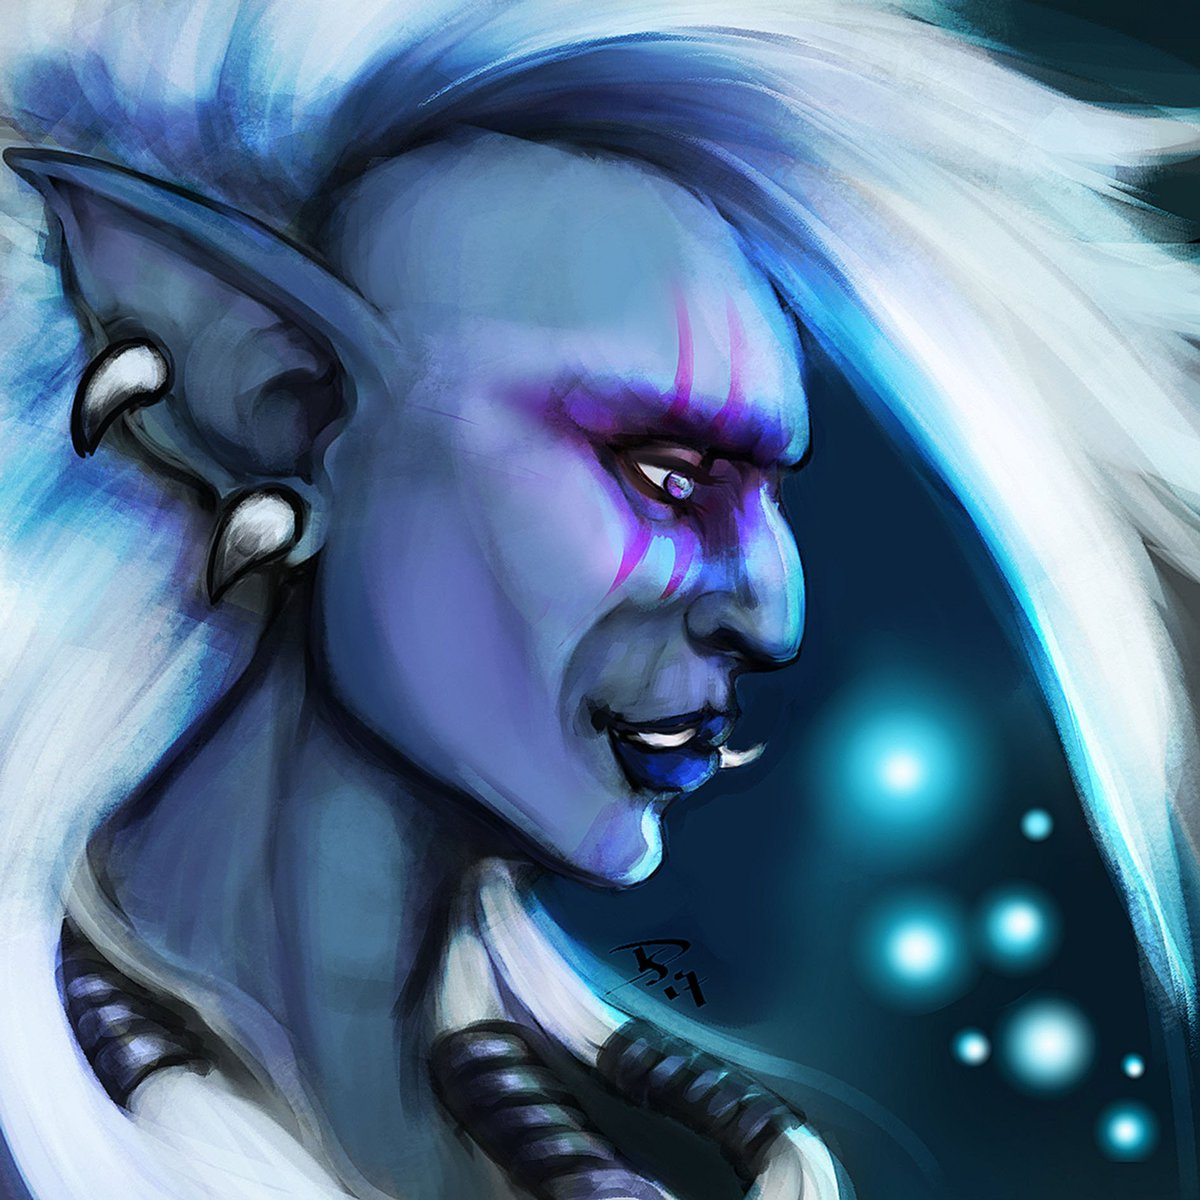 Here&#39;s an older one, of one of the trolls. #worldofwarcraft #troll <br>http://pic.twitter.com/O7ia8jg658